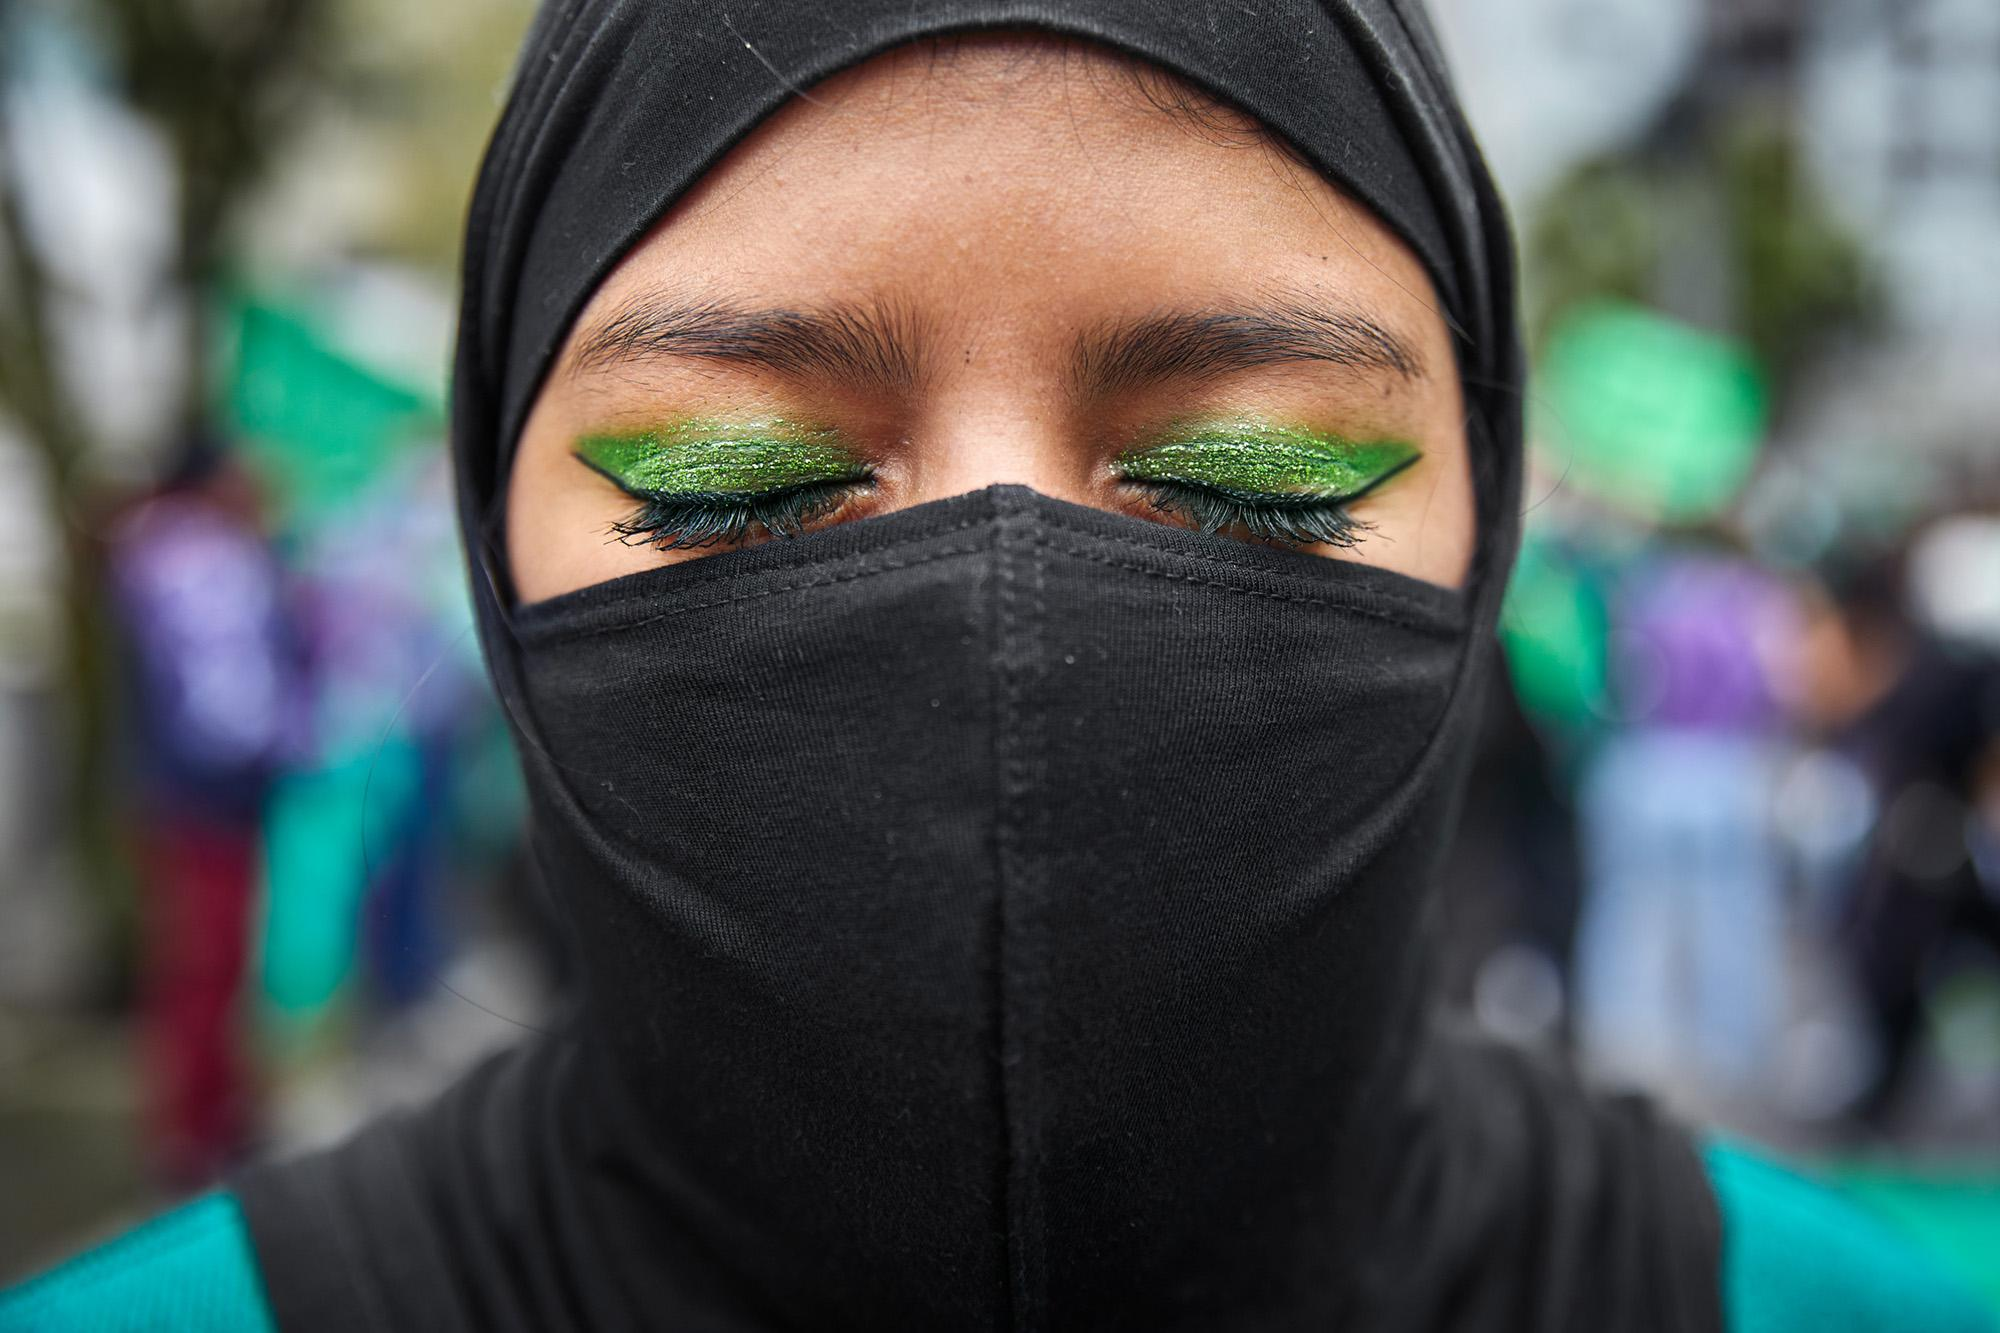 Portrait of a young woman, she has painted her eyes with green glitter. The color green has become a global symbol in the struggle for women's right to decide. April 28, 2021, Quito, Ecuador.